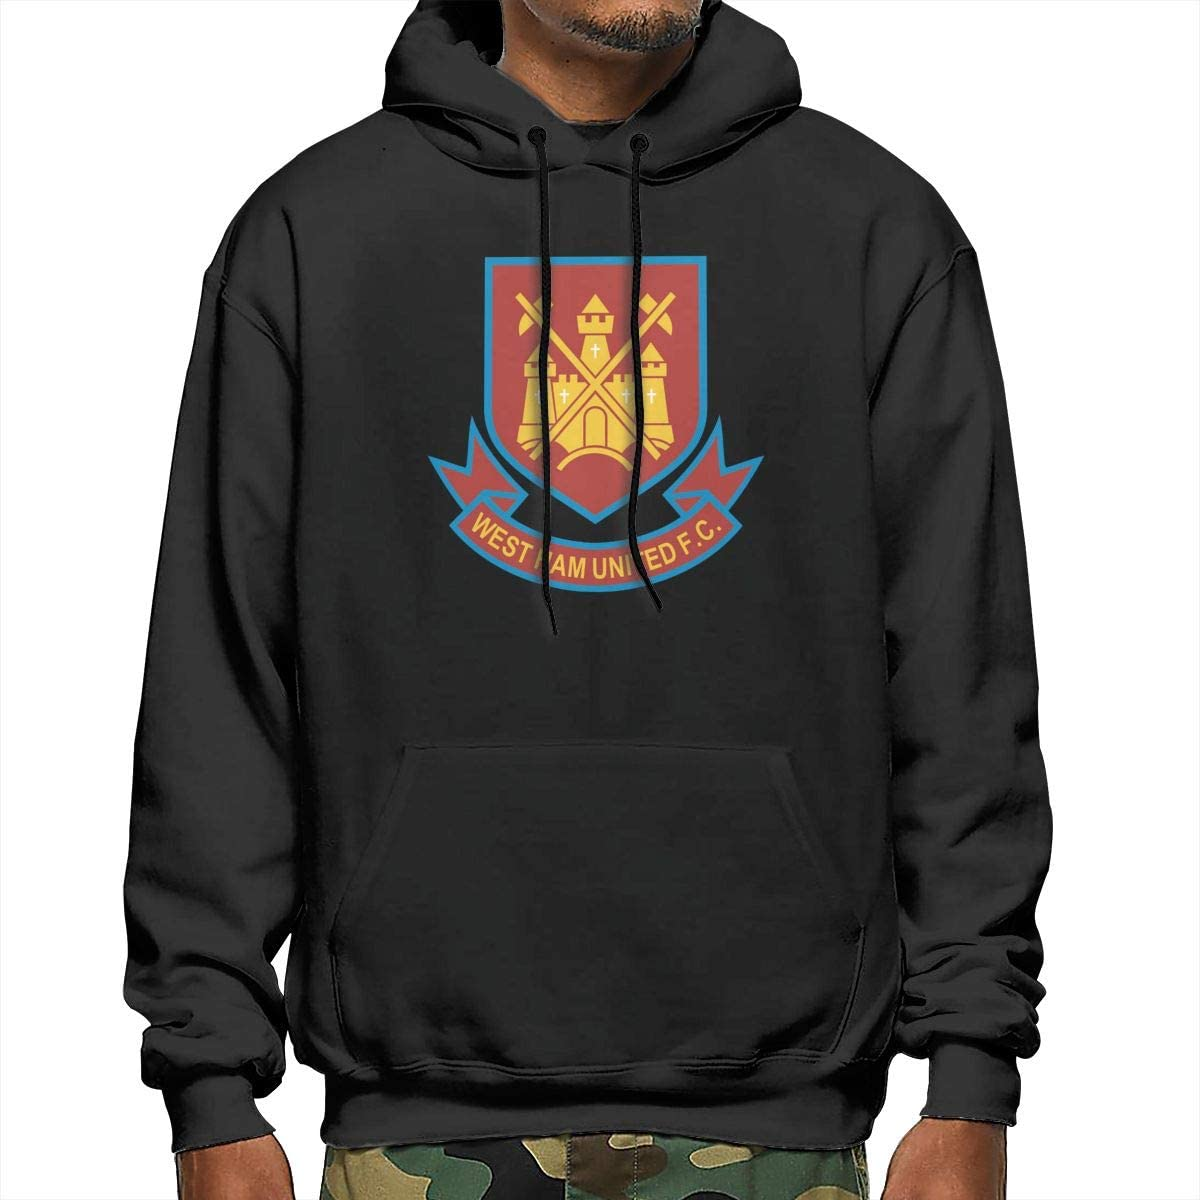 Takeyia Mens West Ham United Football Club Logo Hoodies Top for Adult Sweatshirt Black Hoodies